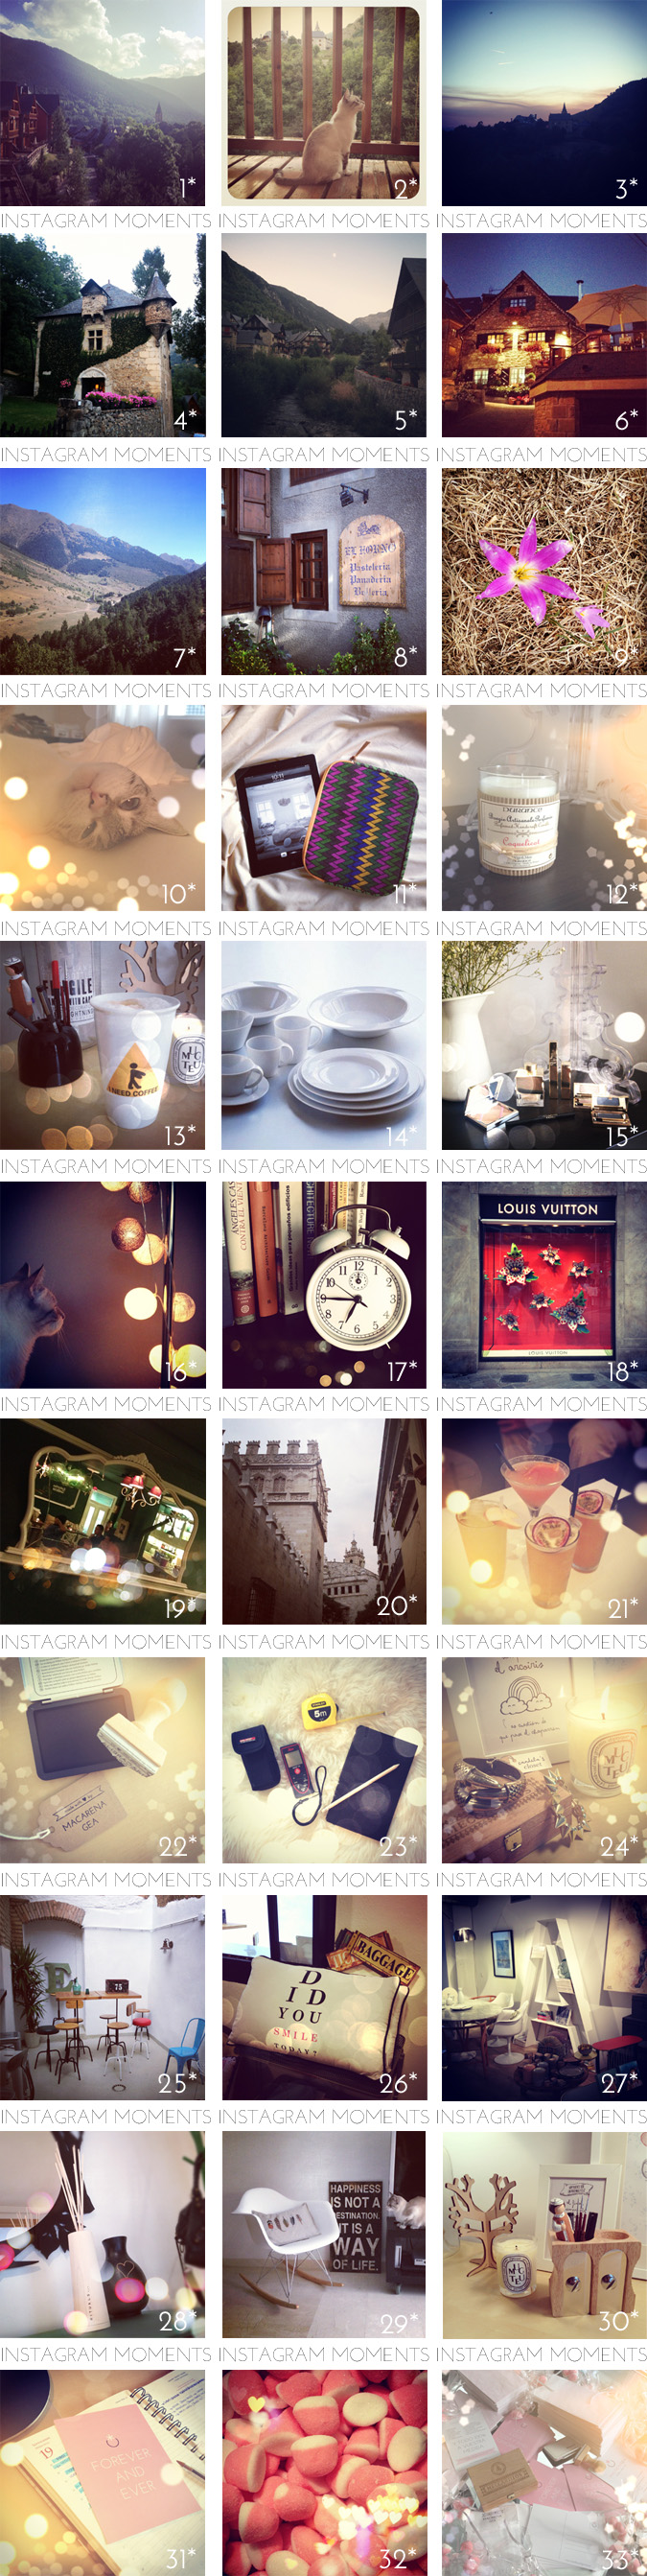 33 instagram moments-2573-macarenagea